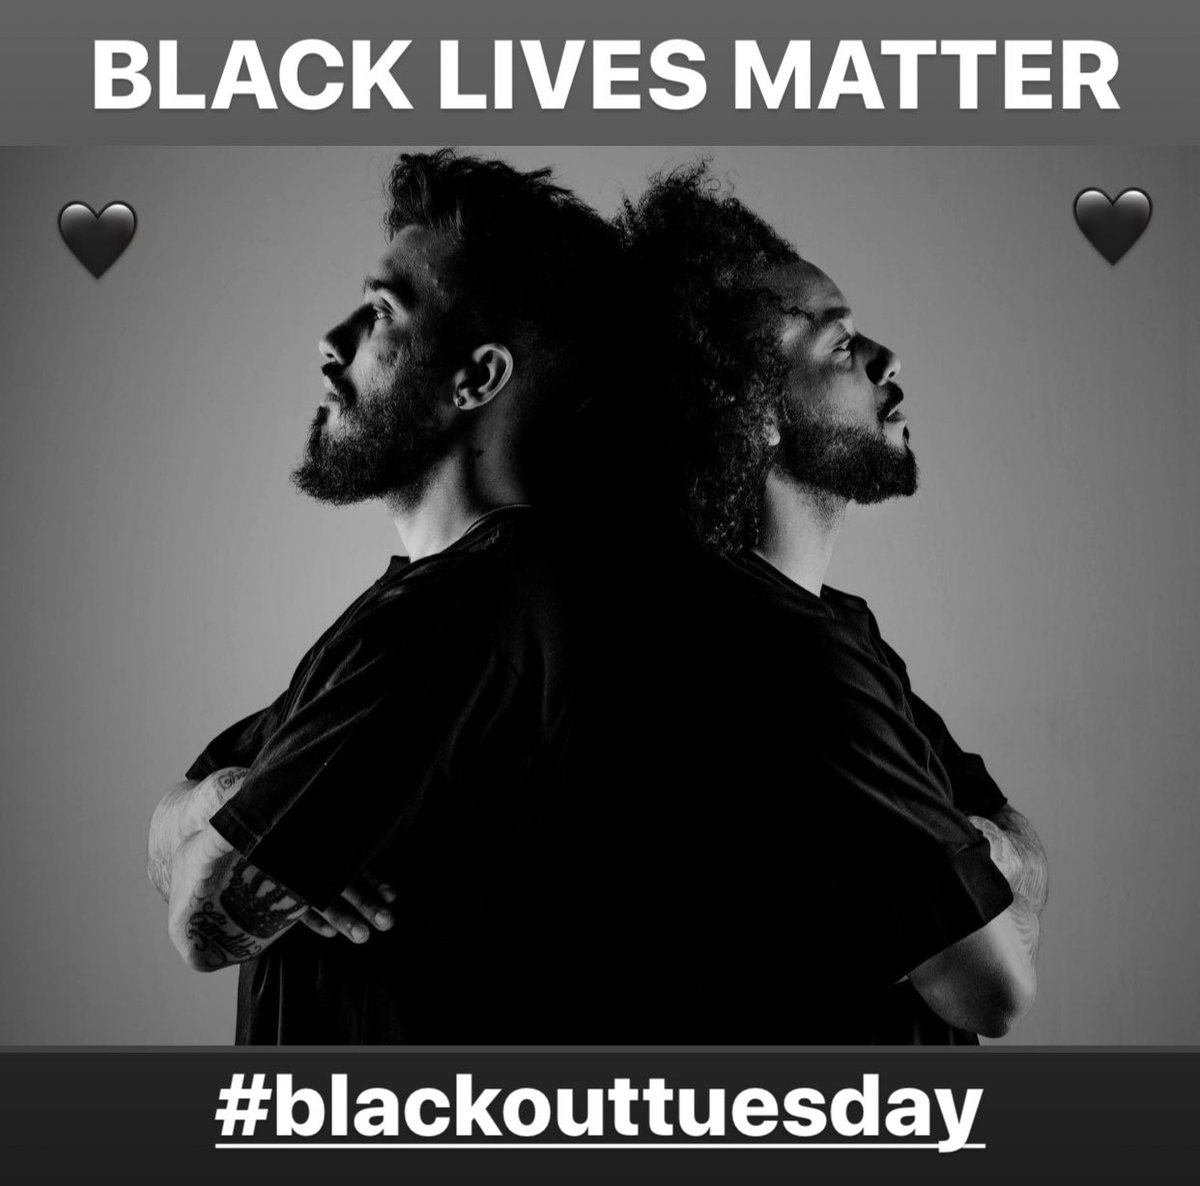 BLACK LIVES MATTER 🖤🖤🖤  #blackouttuesday https://t.co/93SIaPZ6OE